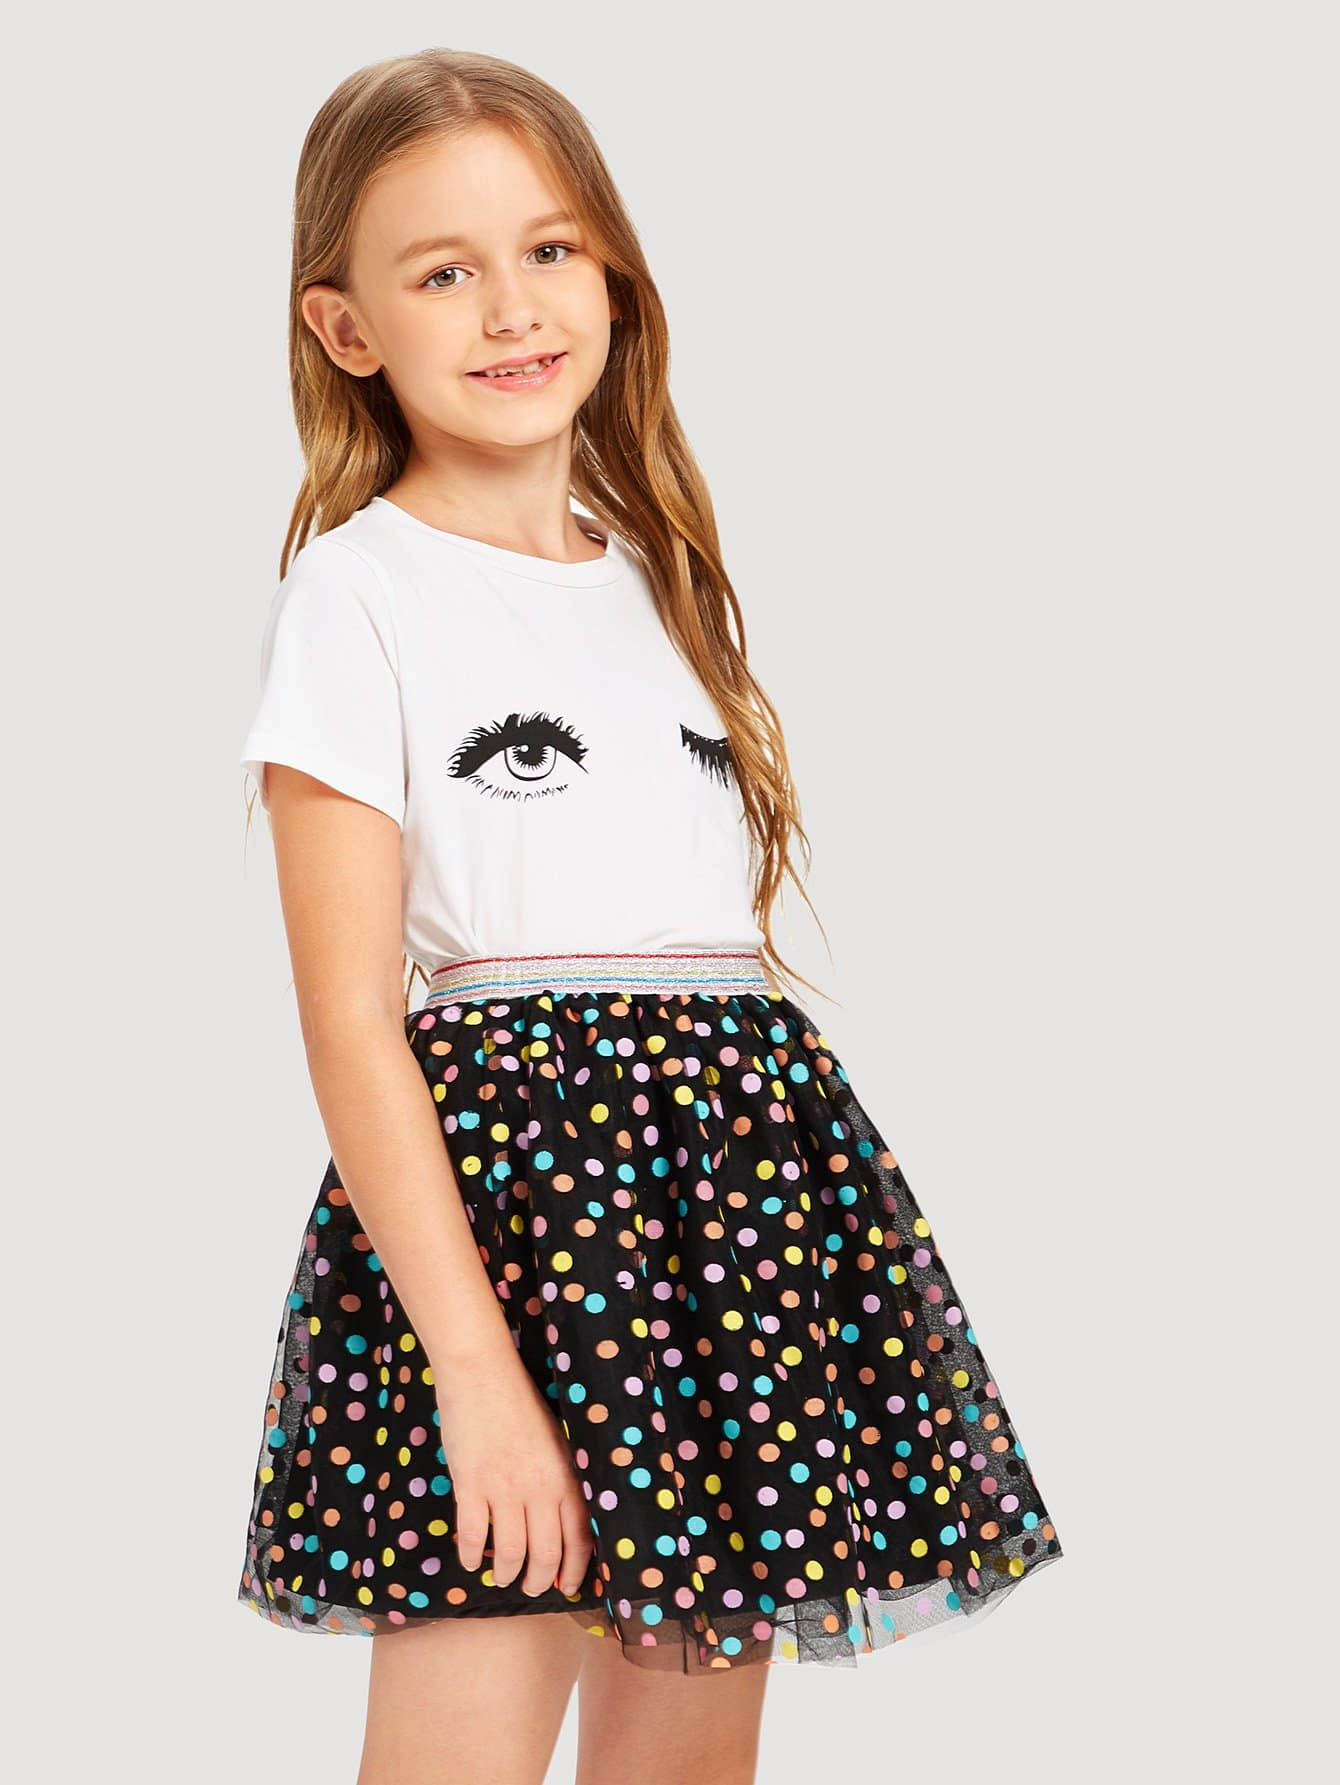 Girls Mesh Contrast Polka Dot Skirt